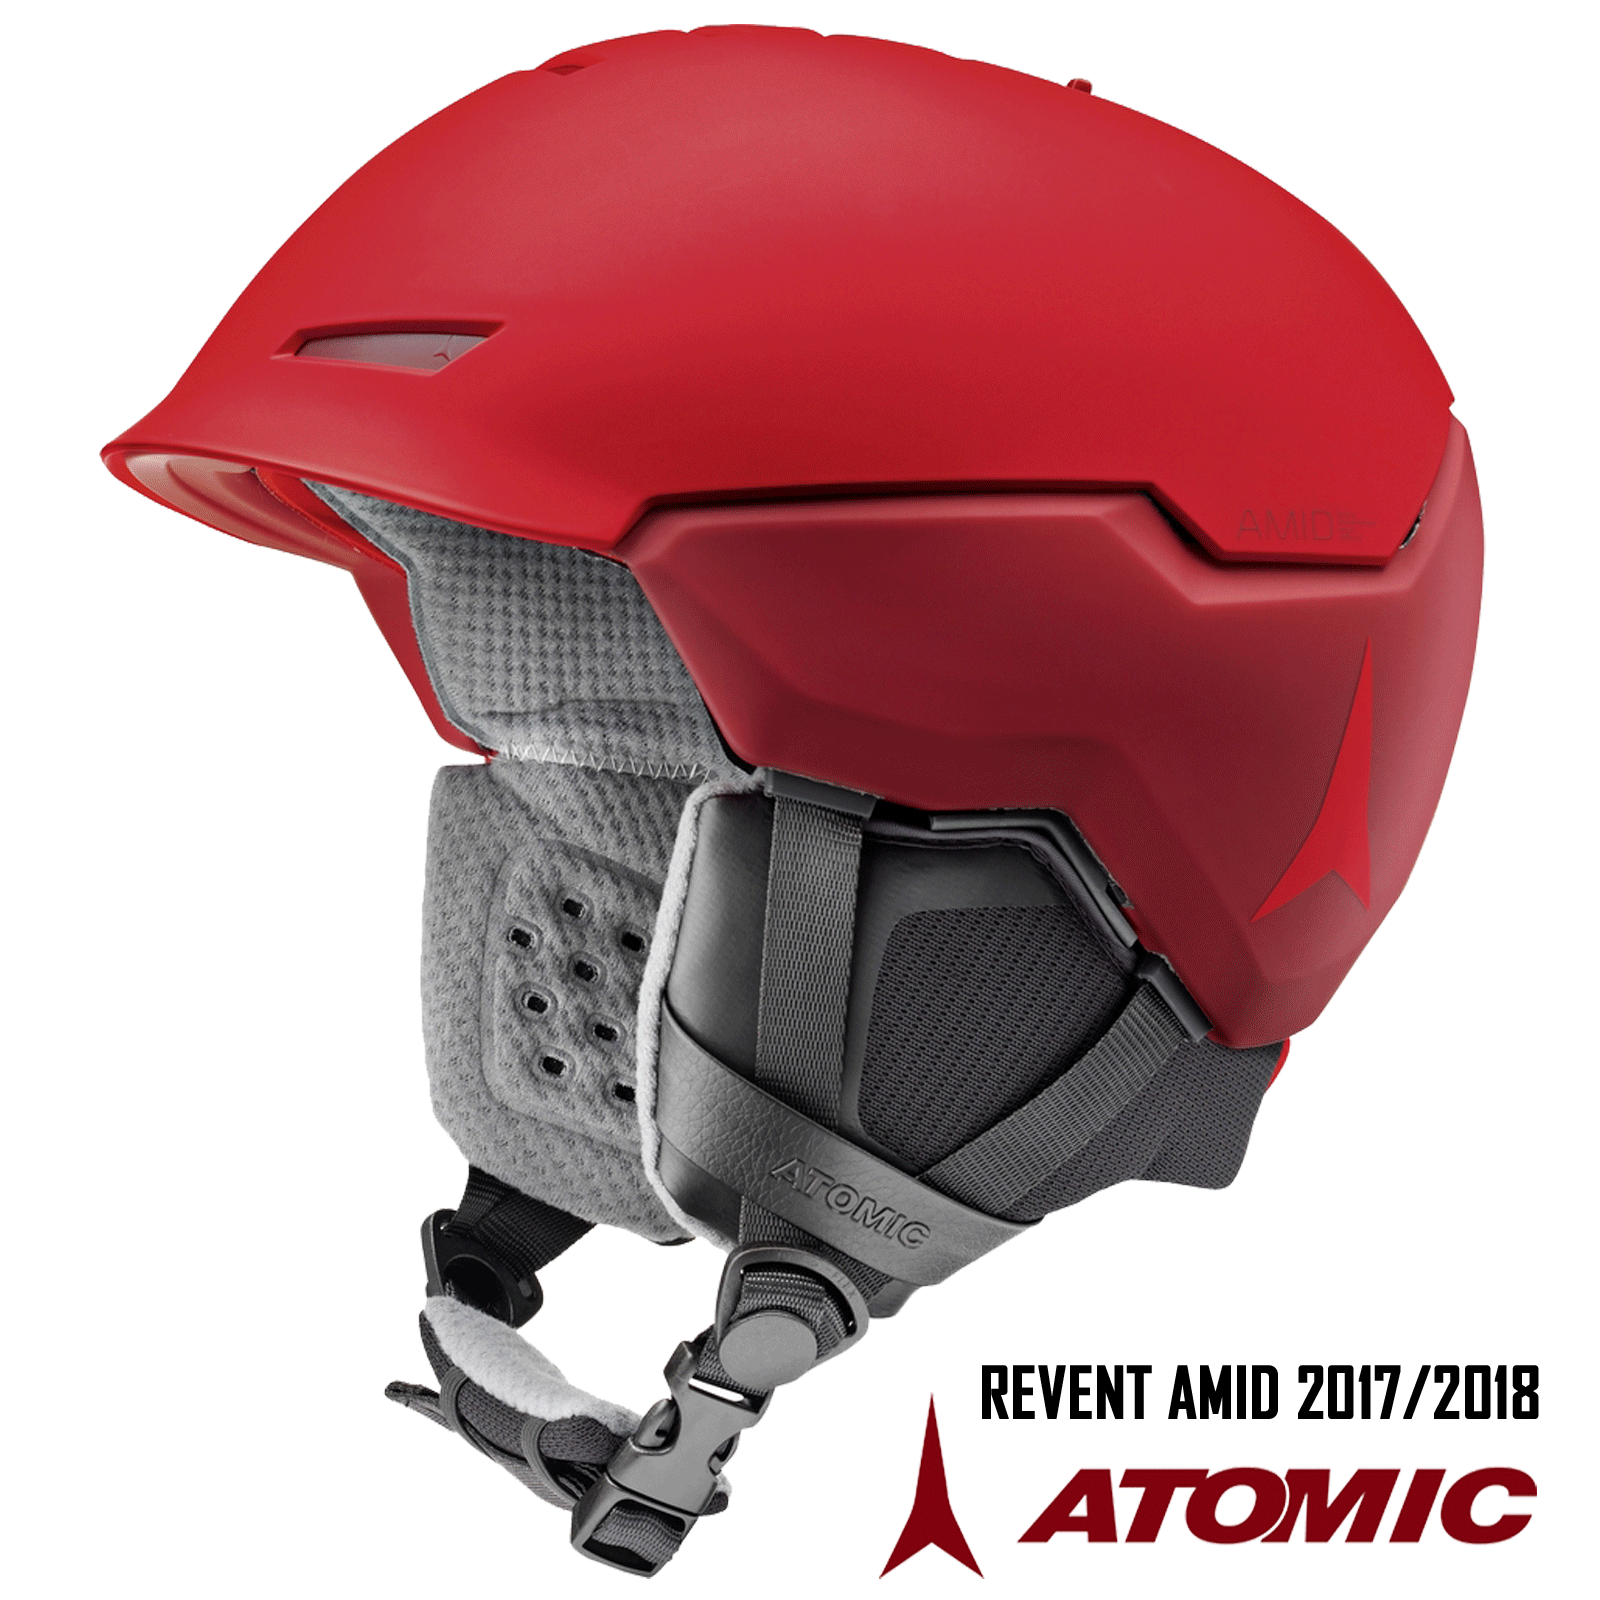 ATOMIC REVENT+ AMID Skihelm LIVE FIT +360° +360° +360° FIT SYSTEM 59-63  2017 2018 UNI6 2a9218